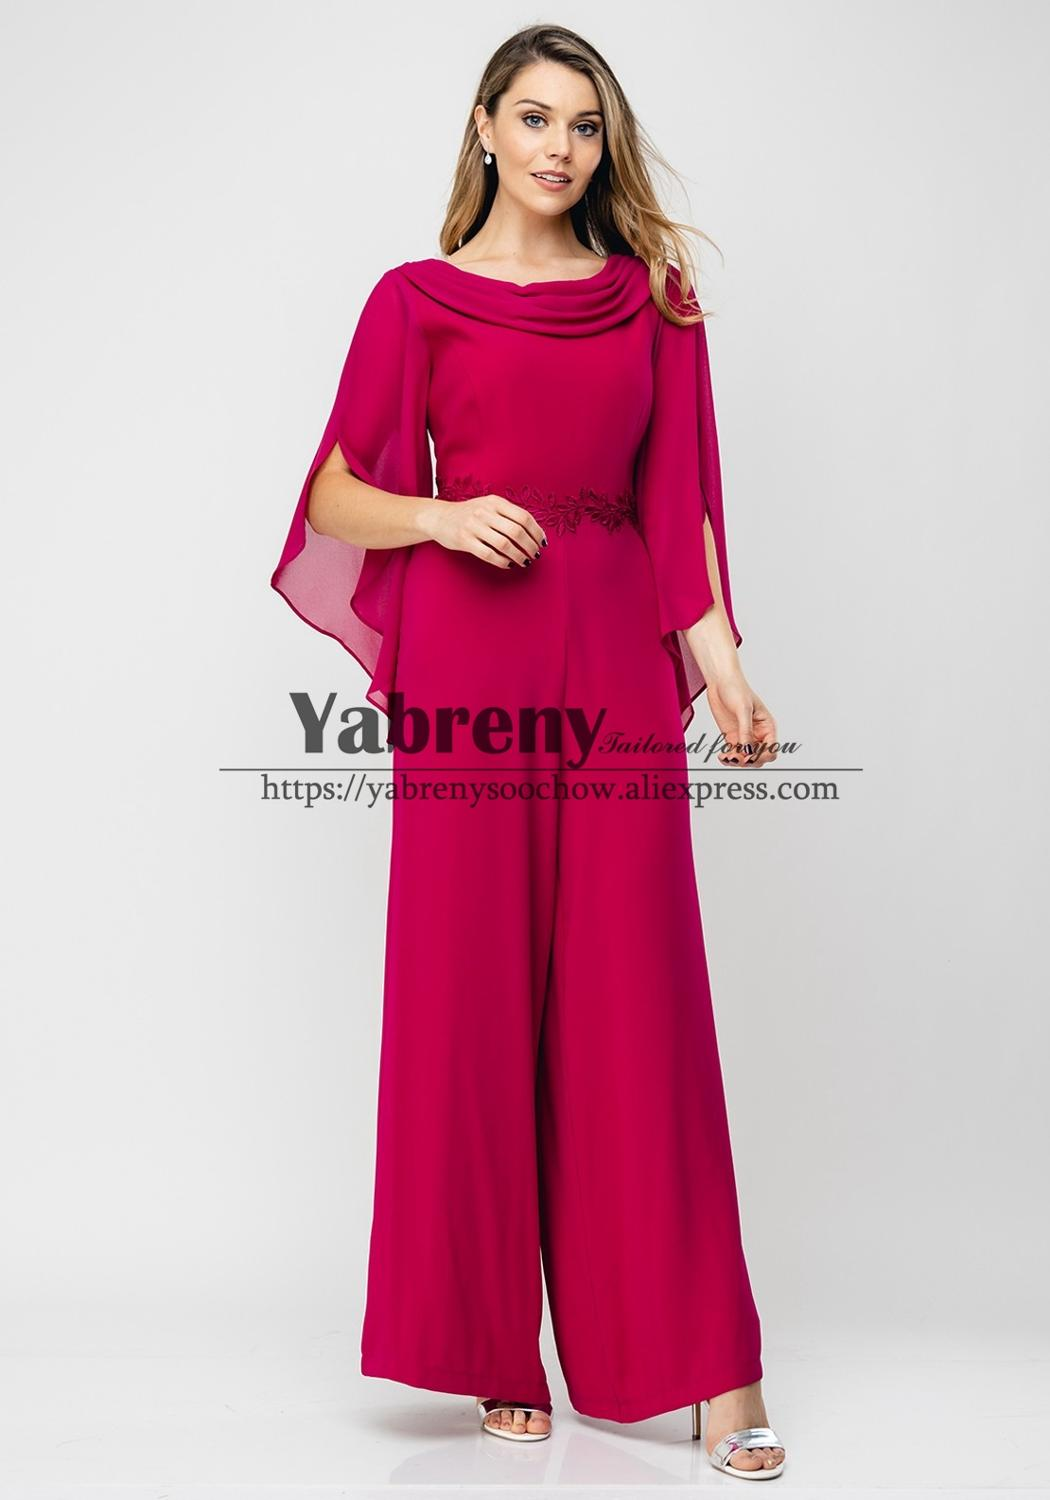 2020 New Arrival Mother Of The Bride Jumpsuit Women Special Occasion Dress